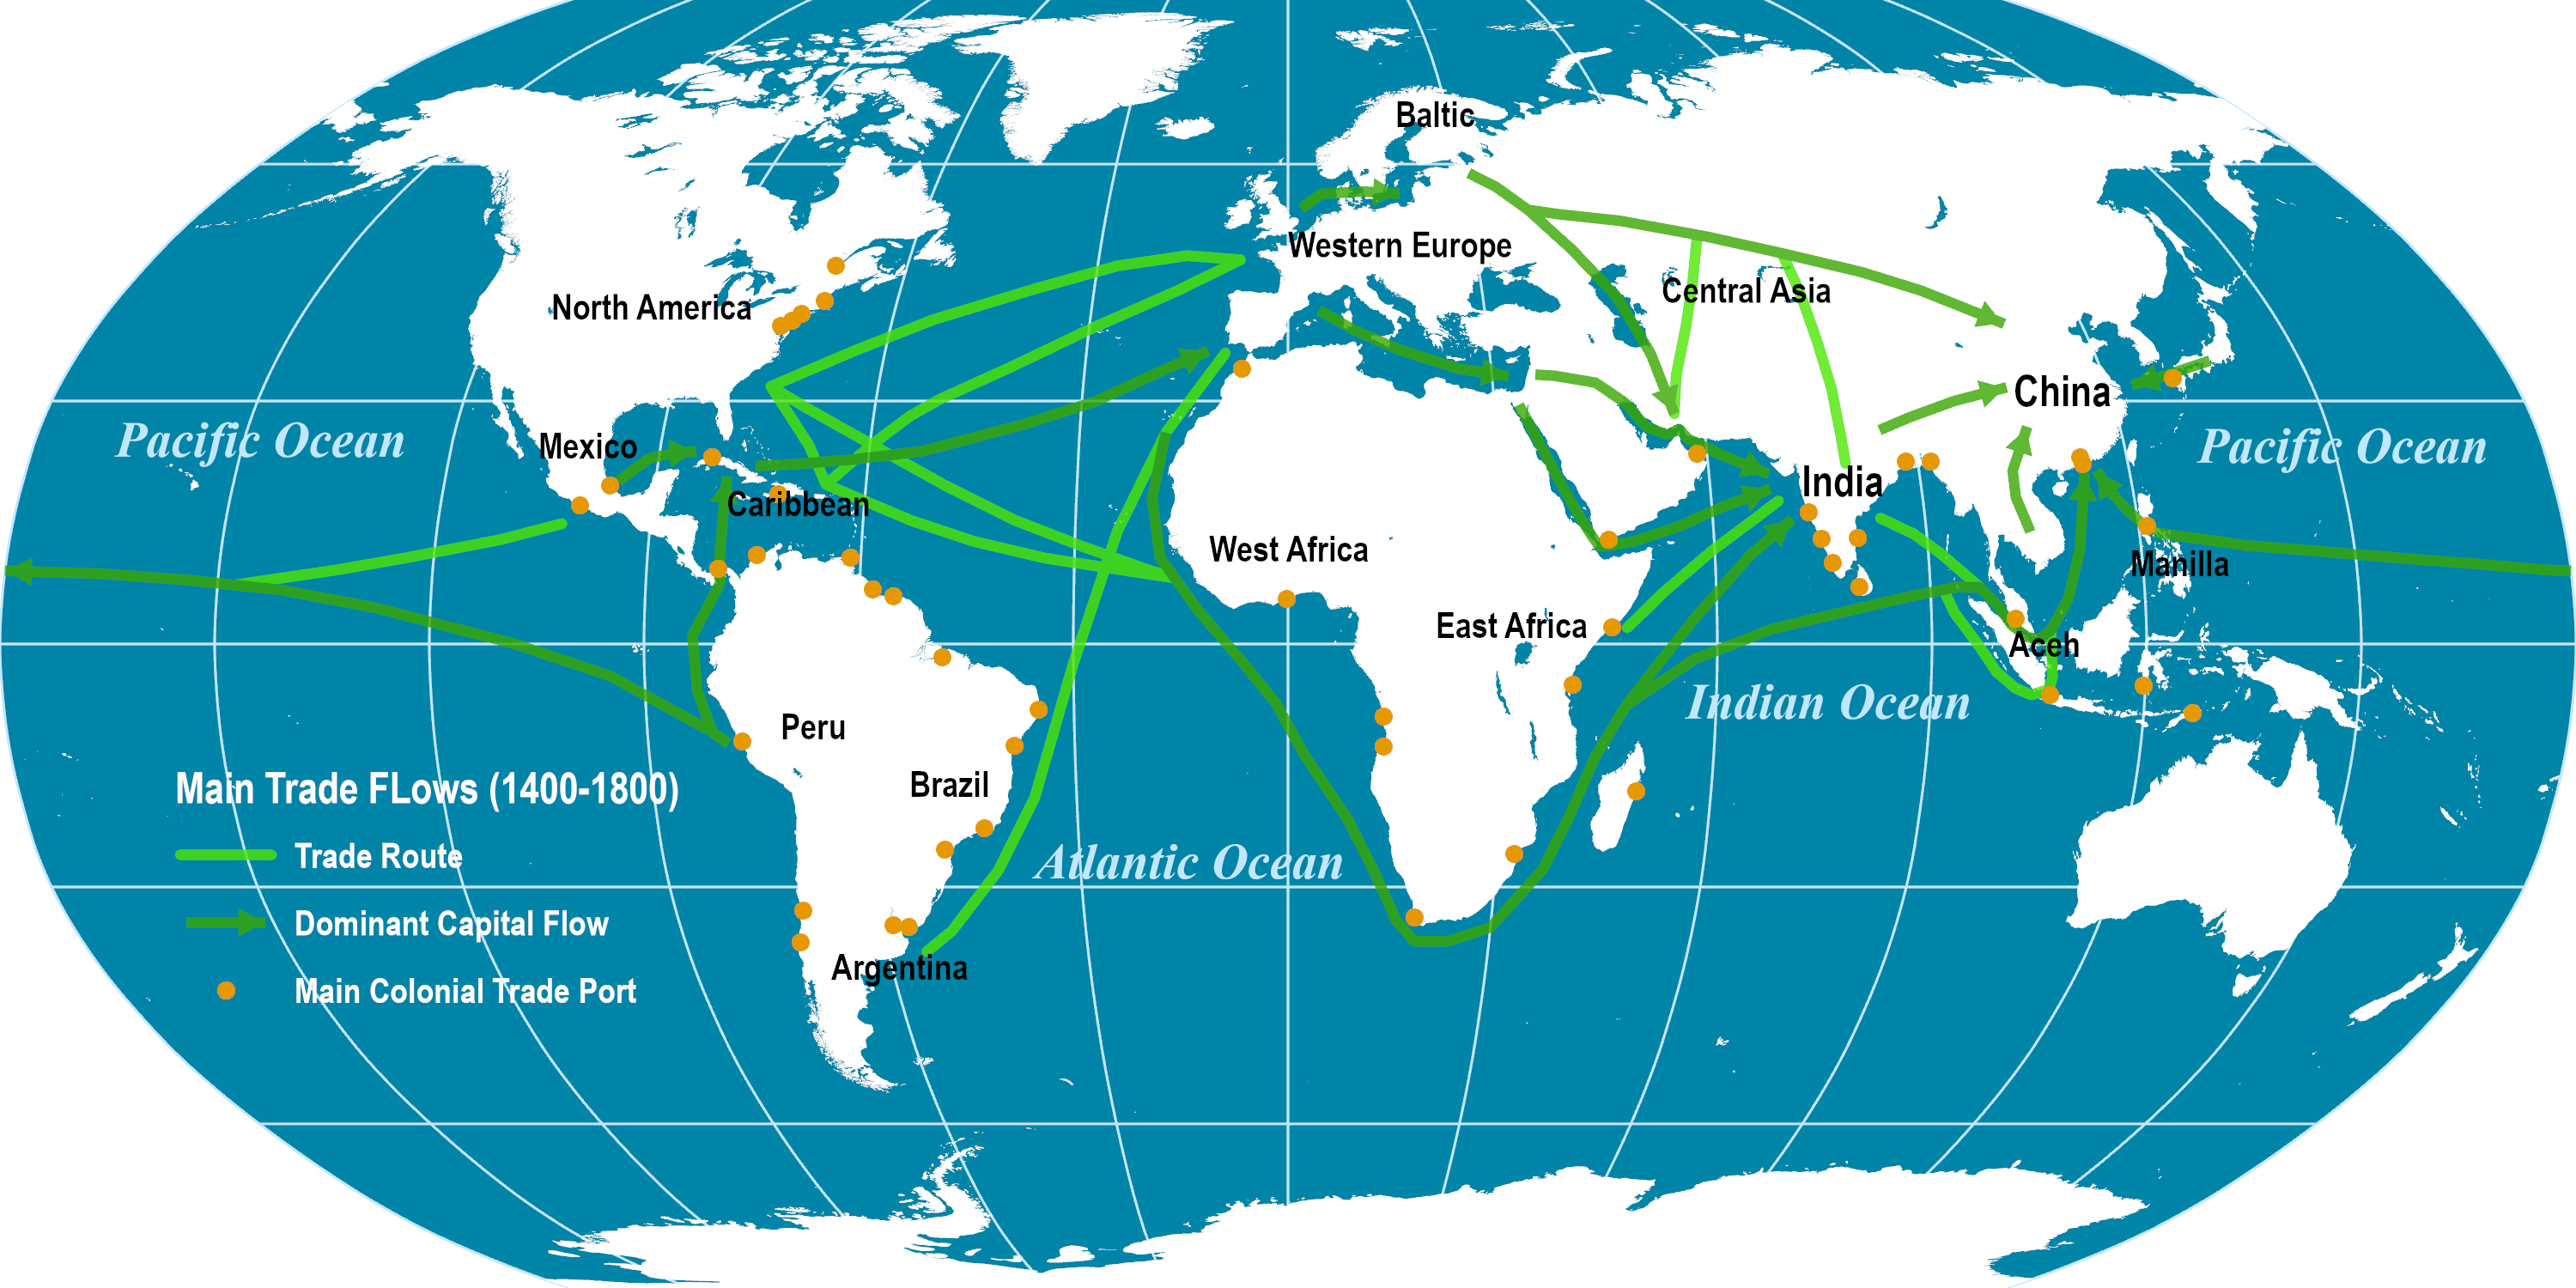 Major Global Trade Routes, 1400-1800 | The Geography of ...